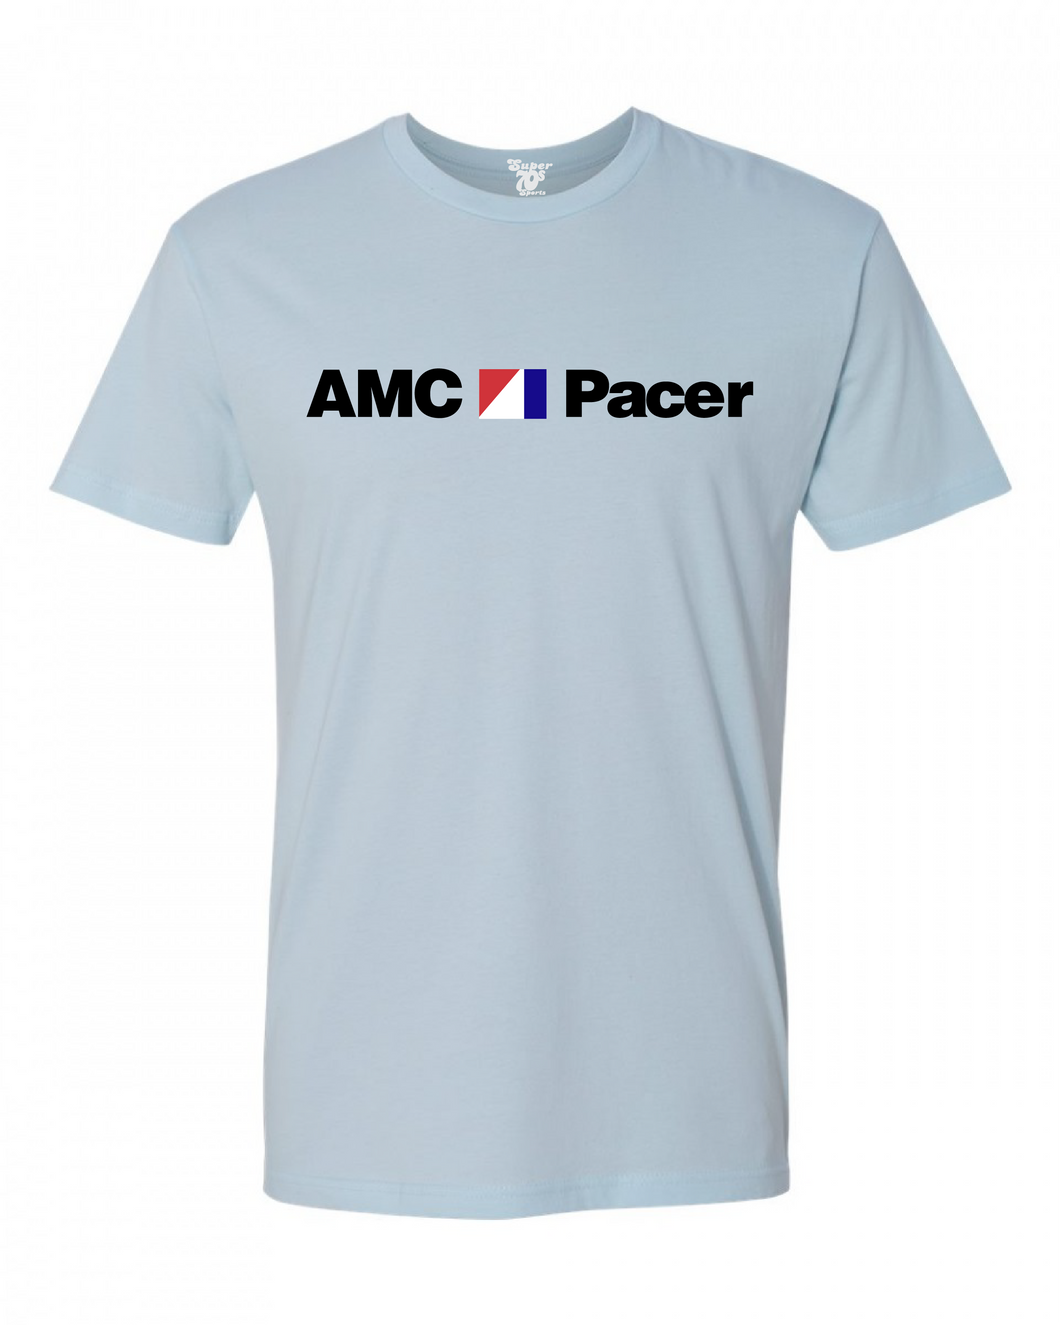 AMC Pacer Tee